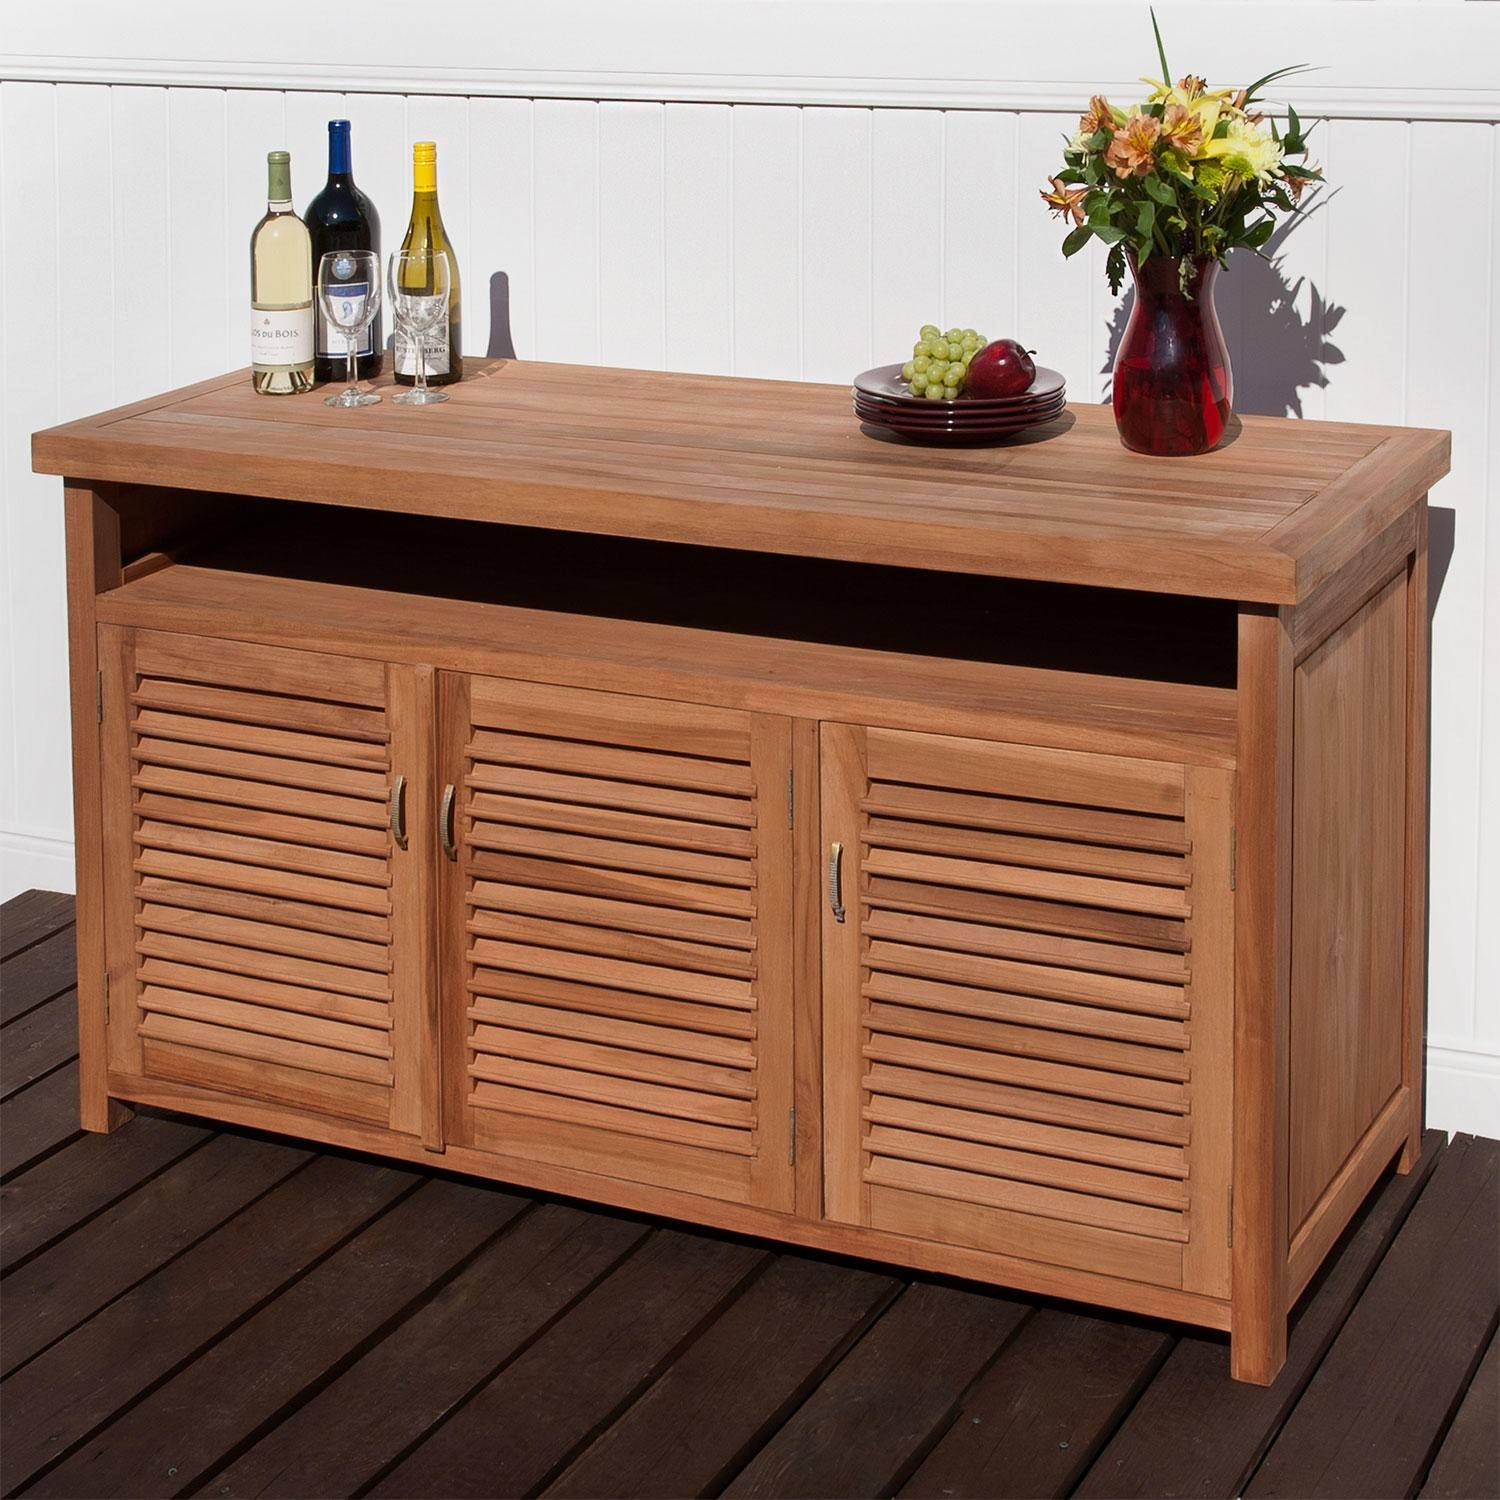 Teak Outdoor Buffet With Storage – Outdoor With Regard To Most Up To Date Outdoor Sideboards (#15 of 15)